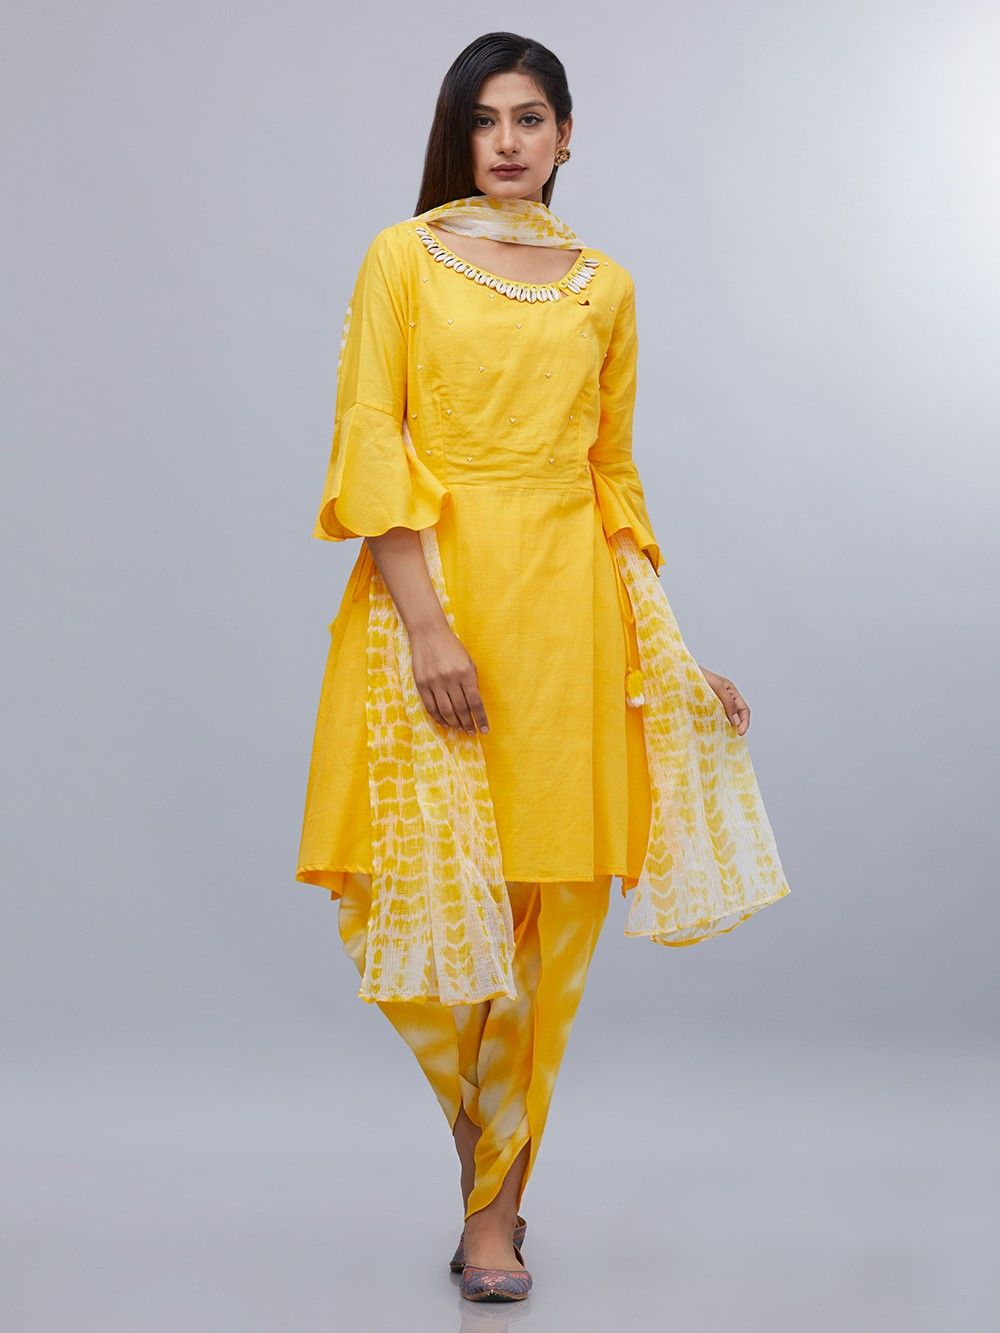 ecb1352cf0b1 Buy Yellow White Tie and Dye Cotton Dupatta online at Theloom